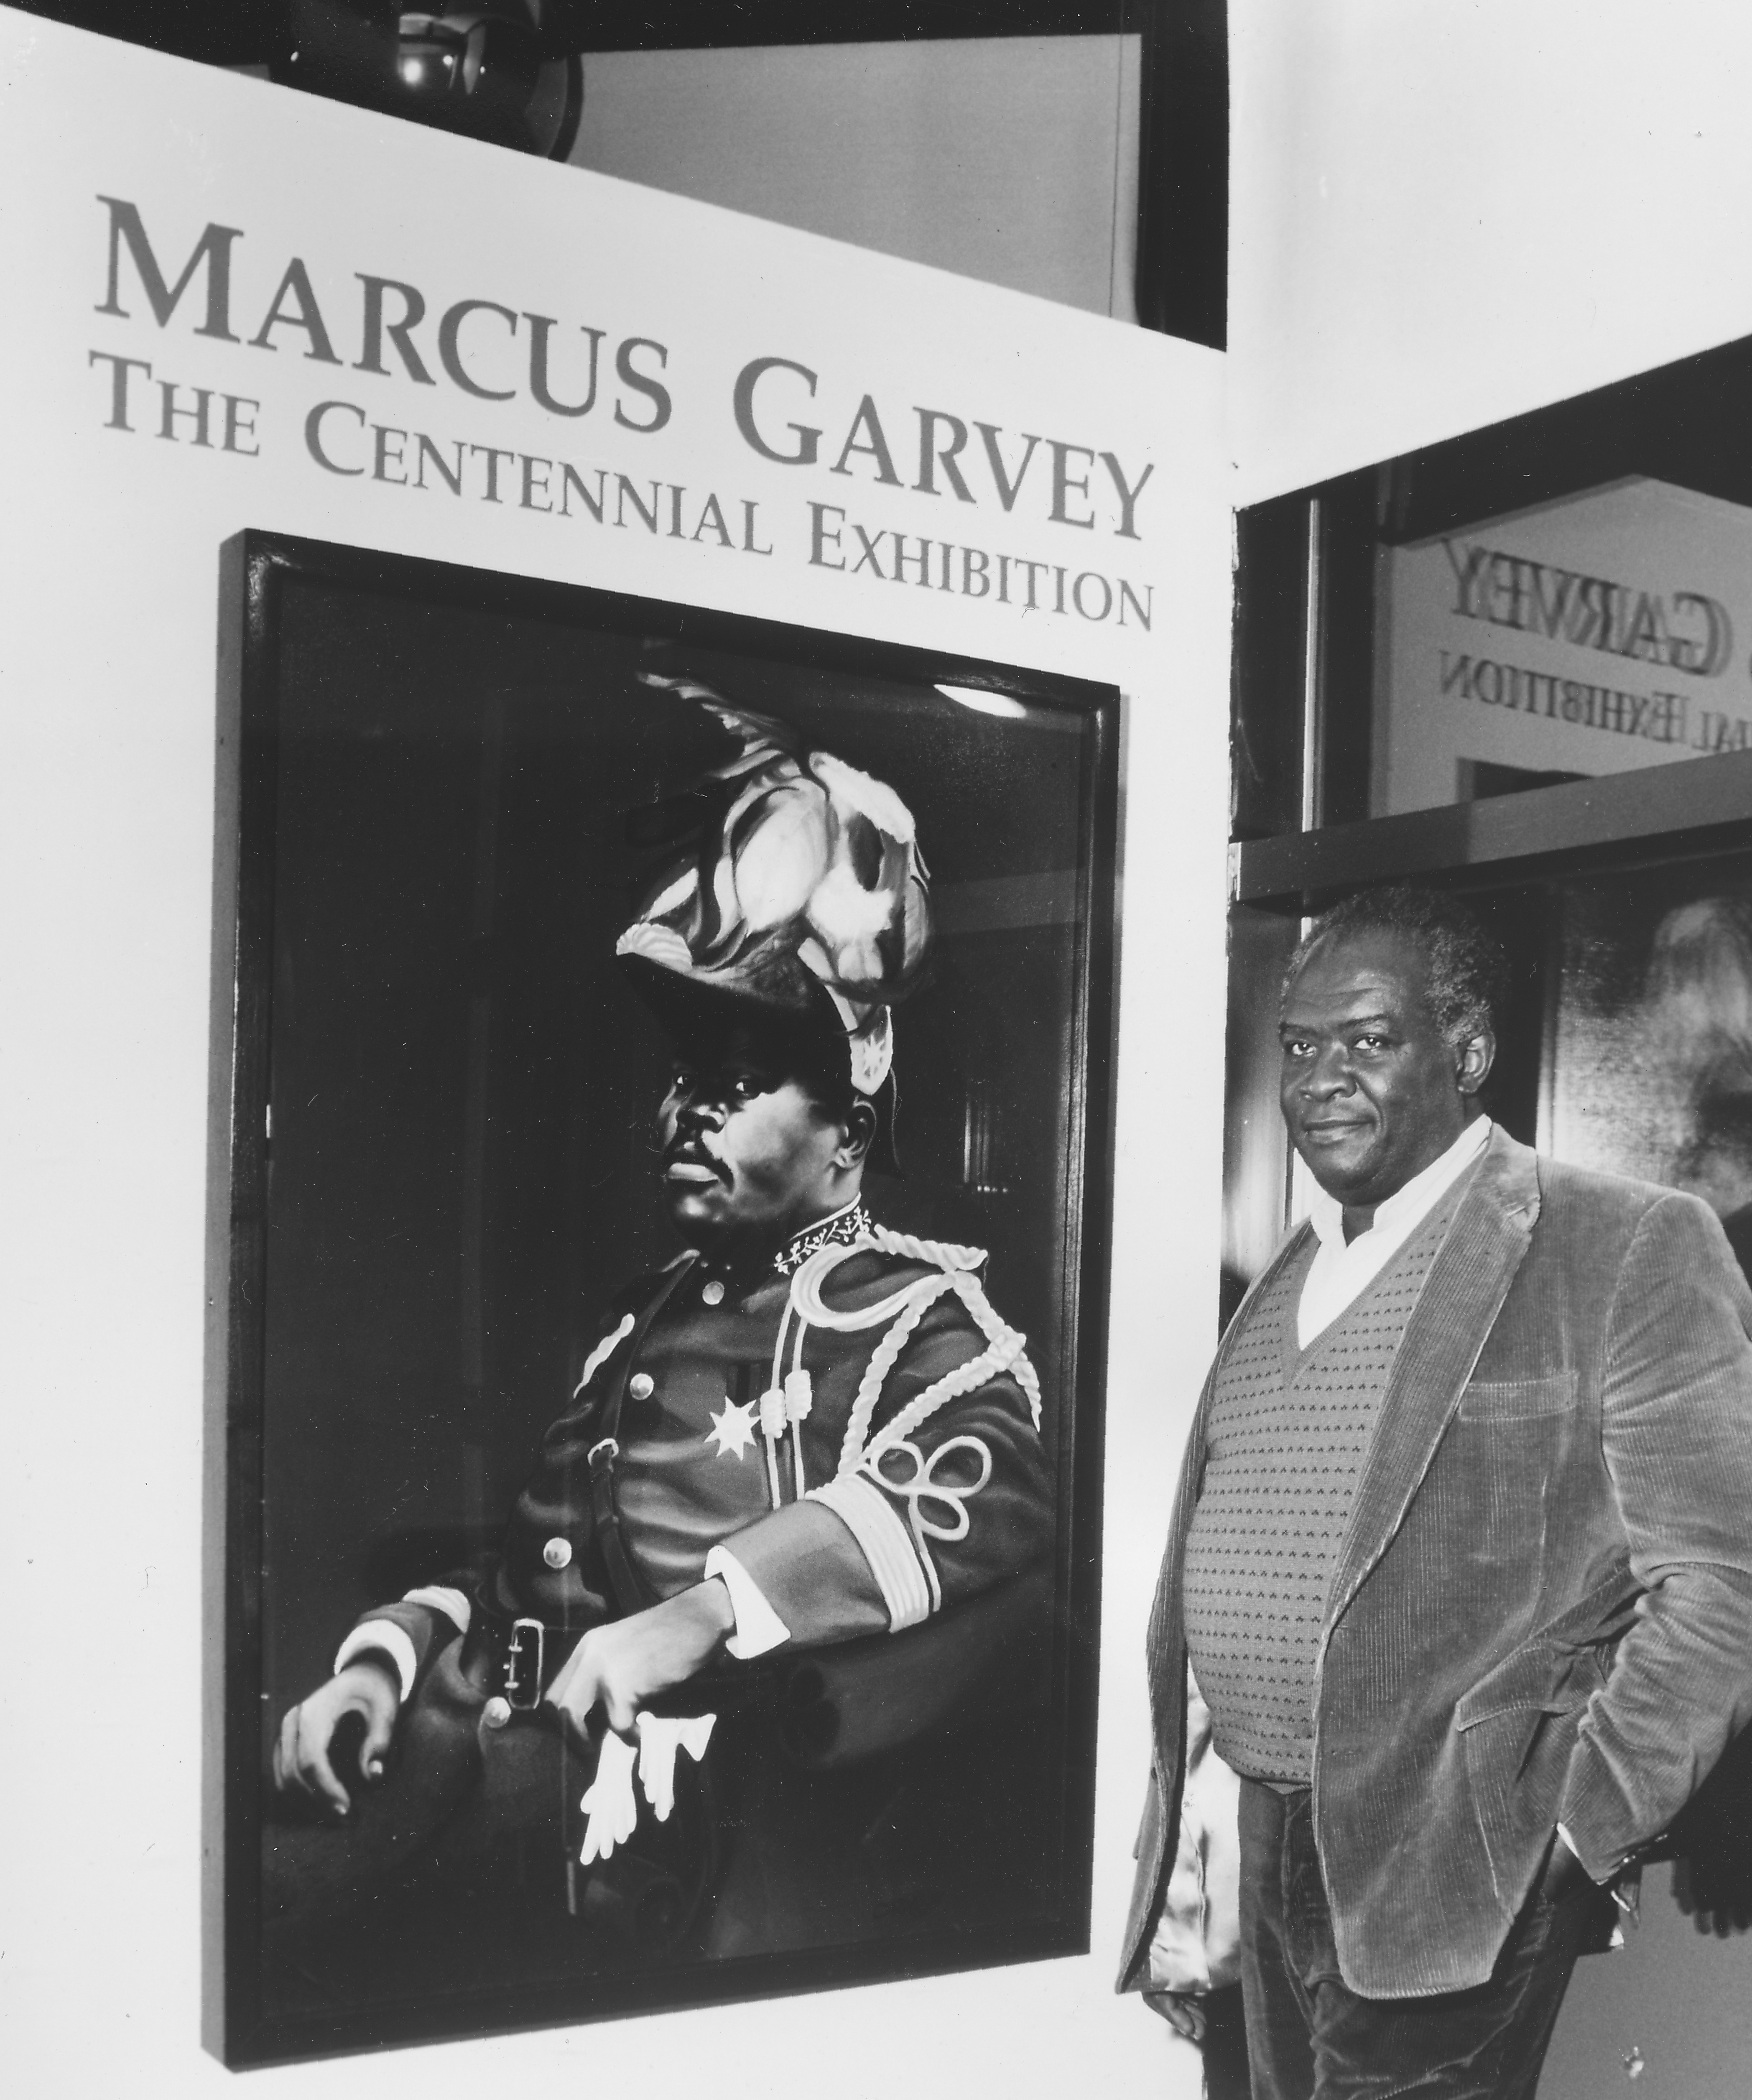 e2461057 https://theundefeated.com/features/family-of-marcus-garvey-seeks ...